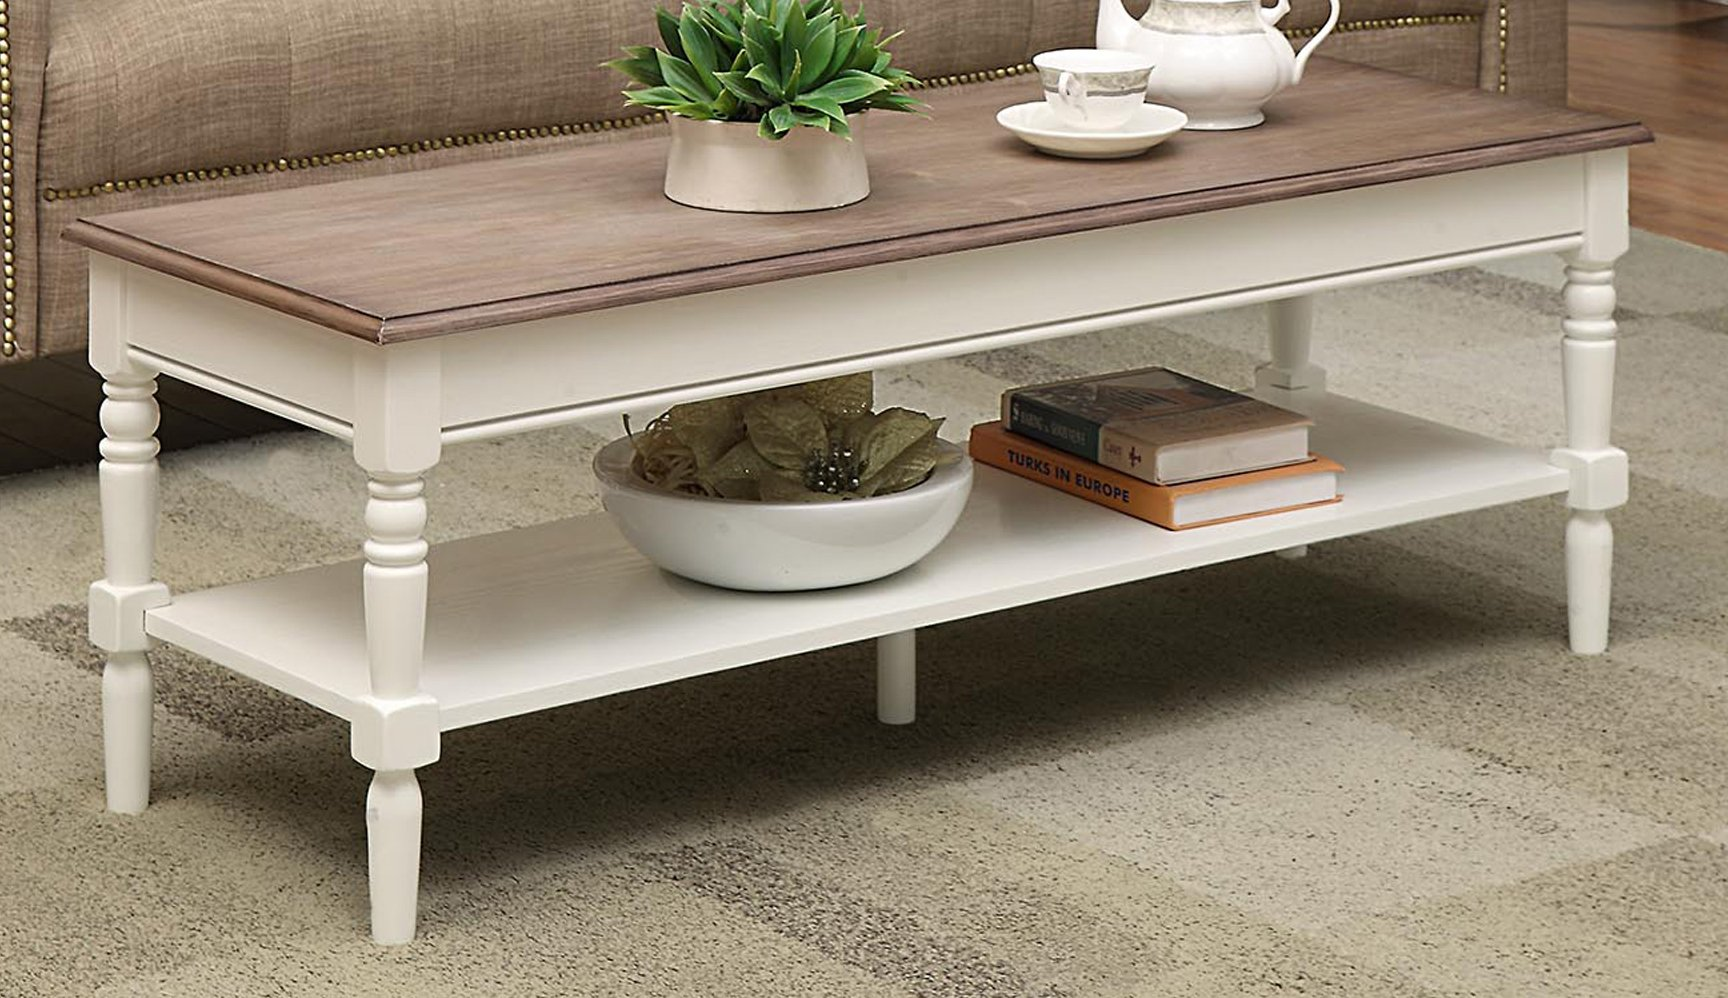 Convenience Concepts French Country Coffee Table, Driftwood / White by Convenience Concepts